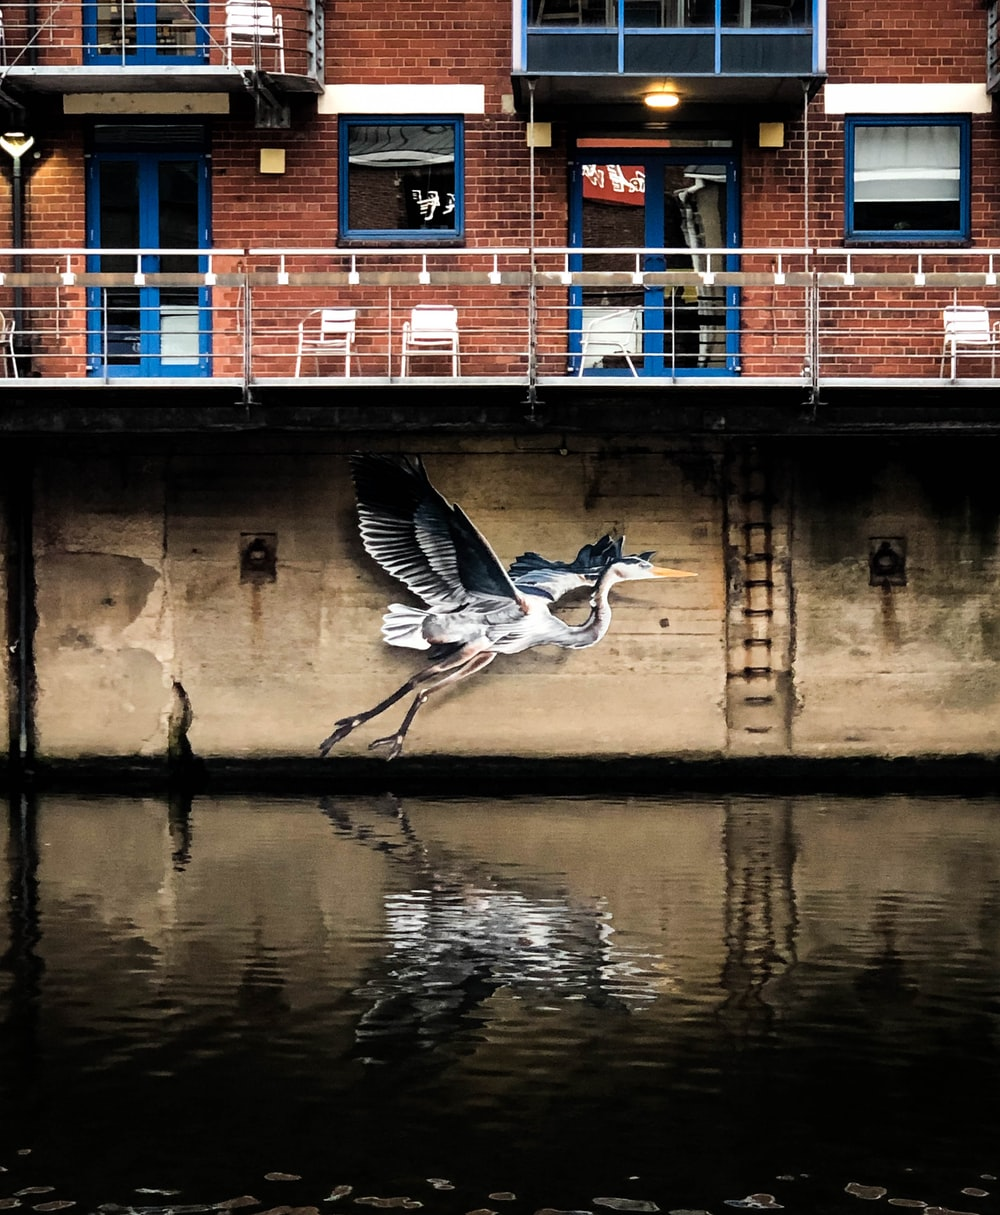 pelican wall painting near body of water